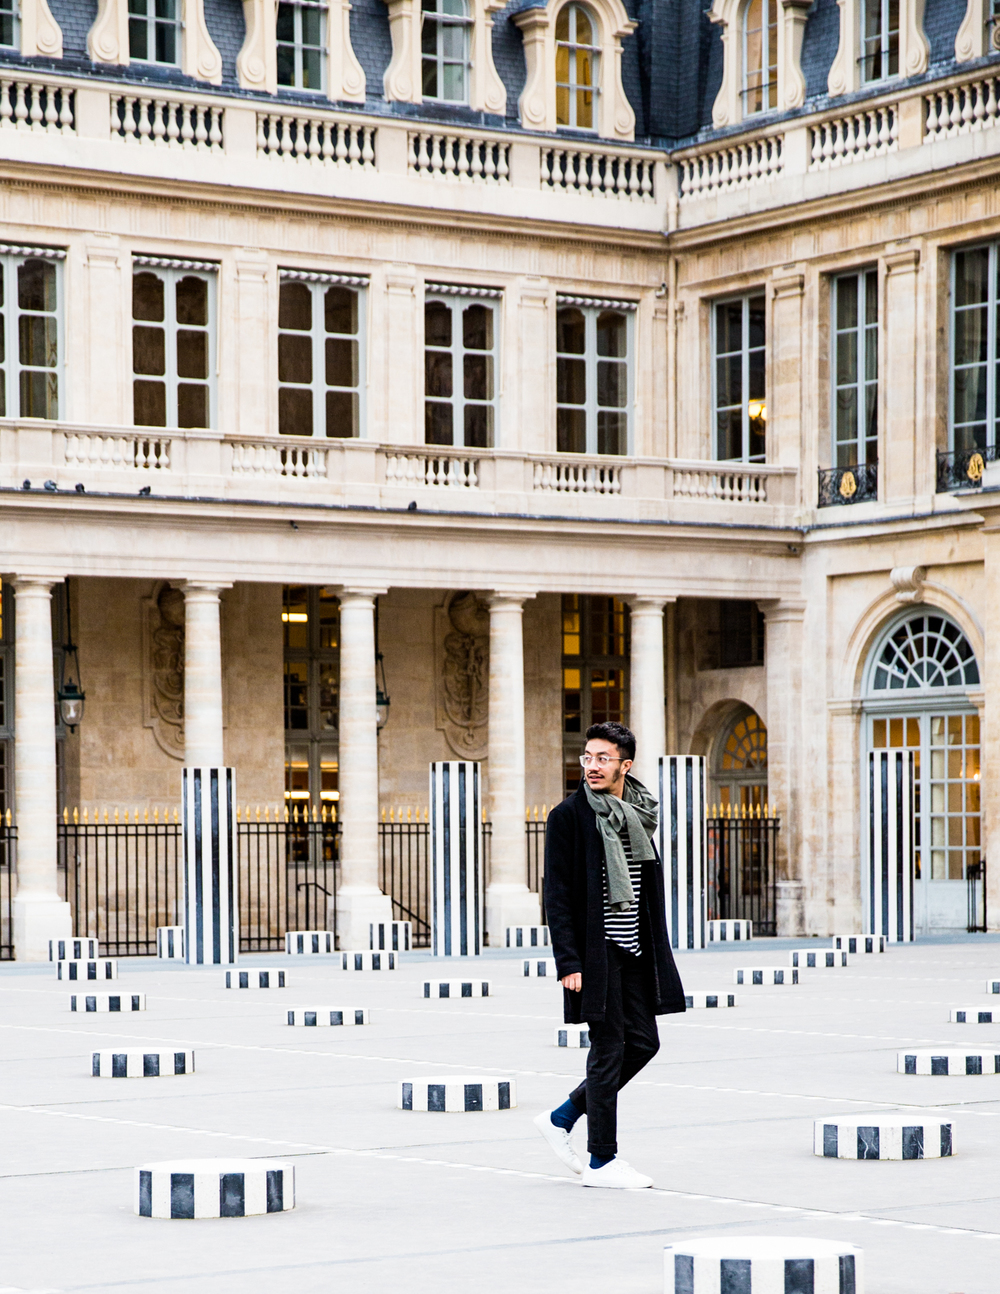 PALAIS- ROYAL   8 rue de Montpensier, 75001    INSIDER TIP  | Daniel Buren's columns are a draw for children who hop from one side of the space to the other and for adults, who quickly feel like they're part of a living work of art. On one side, you'll see the historic theater La Comédie Française and to the other, the Palais Royal gardens.     PHOTO TIP  | Key to getting the perfect shot at the Palais Royal is making sure you're positioned so that the lines of the columns and building intersect.